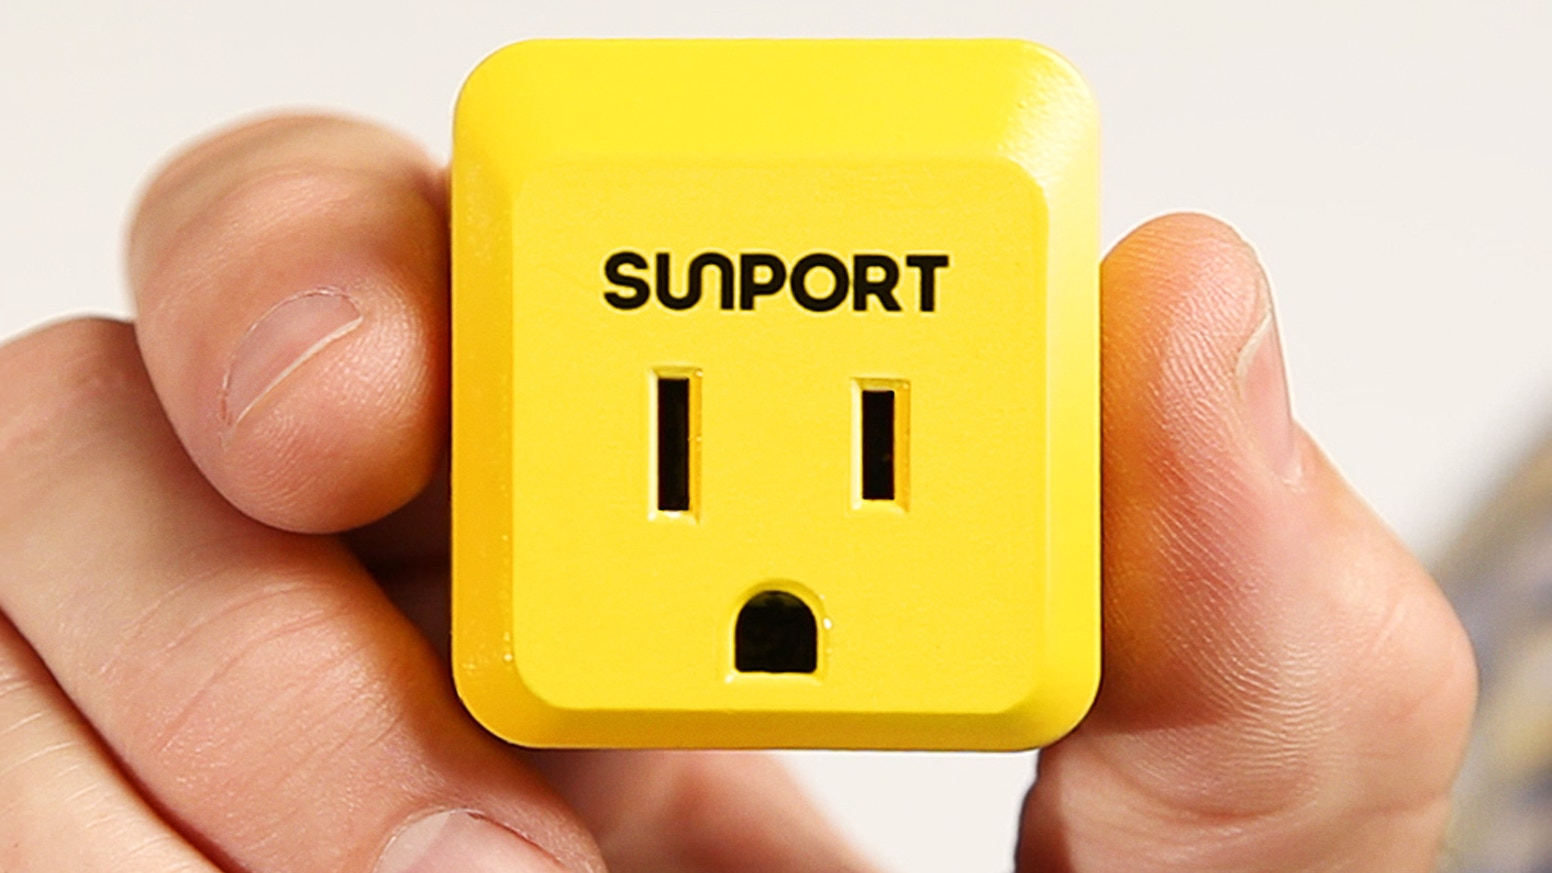 Join the movement to crowdsource demand for solar energy, just by plugging in.